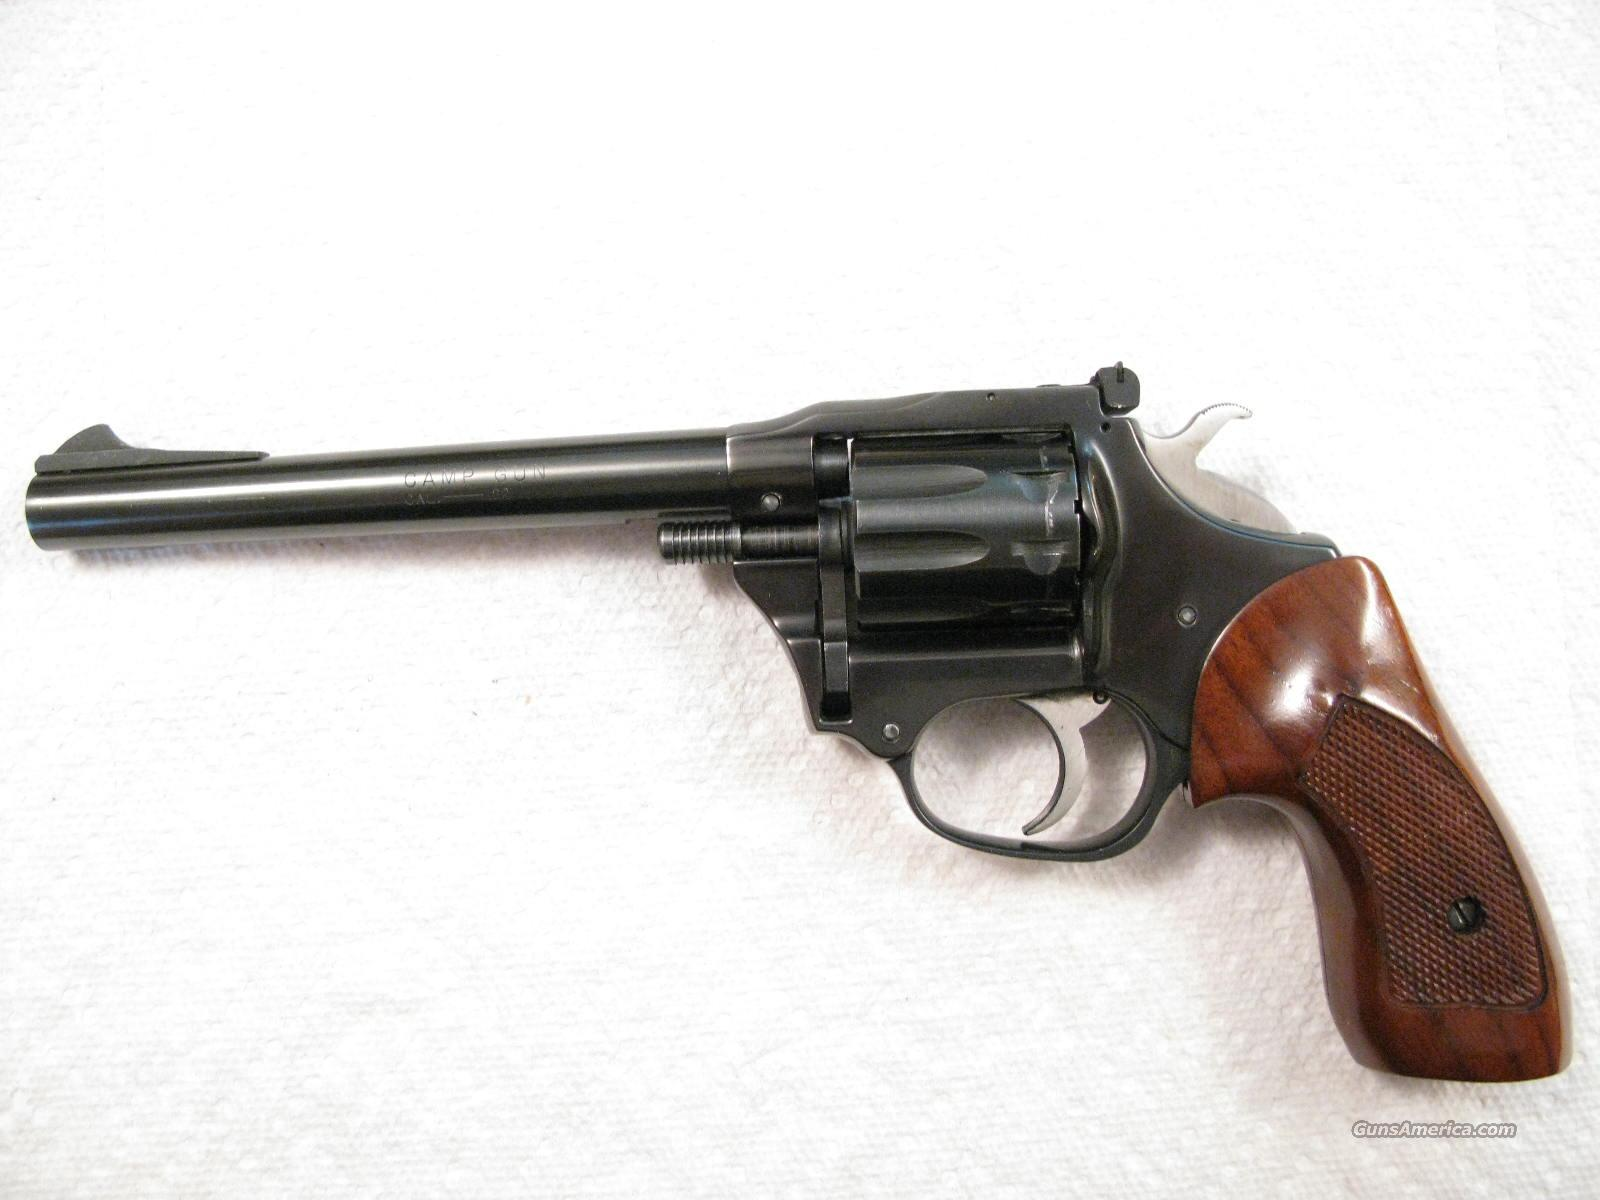 camp gun 6 22 lr 9 shot for sale